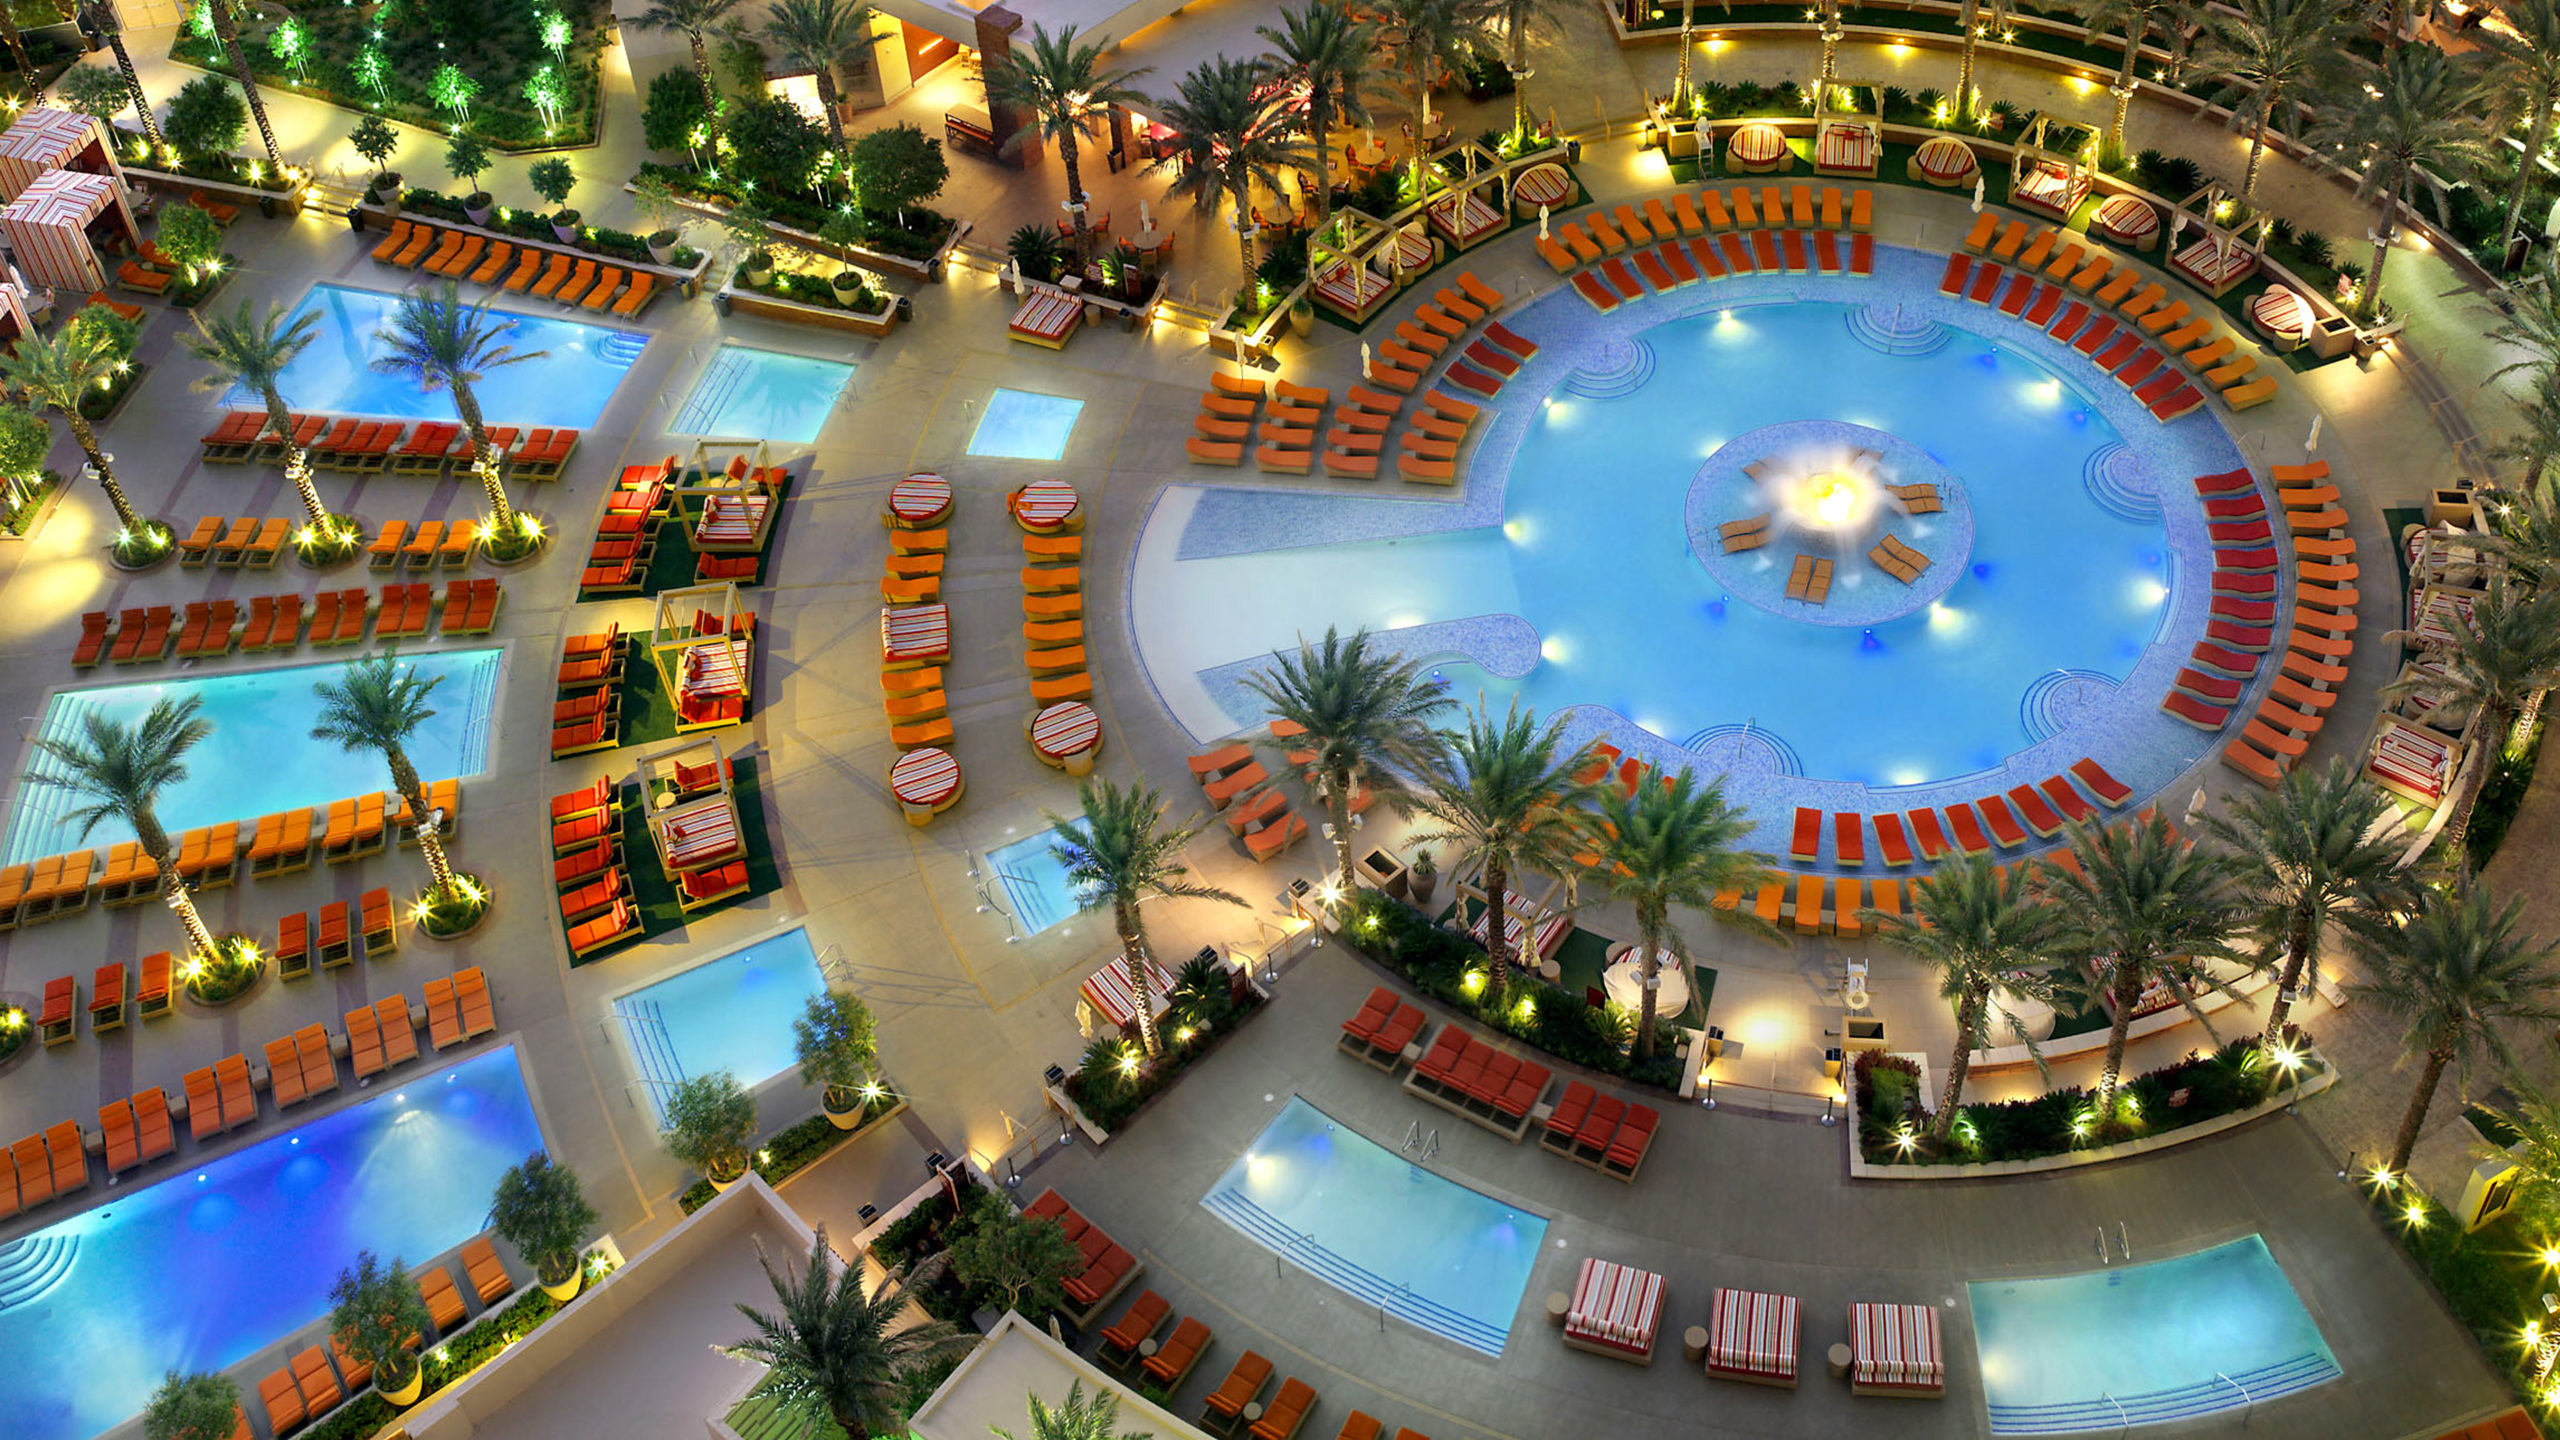 An overhead view of a pool